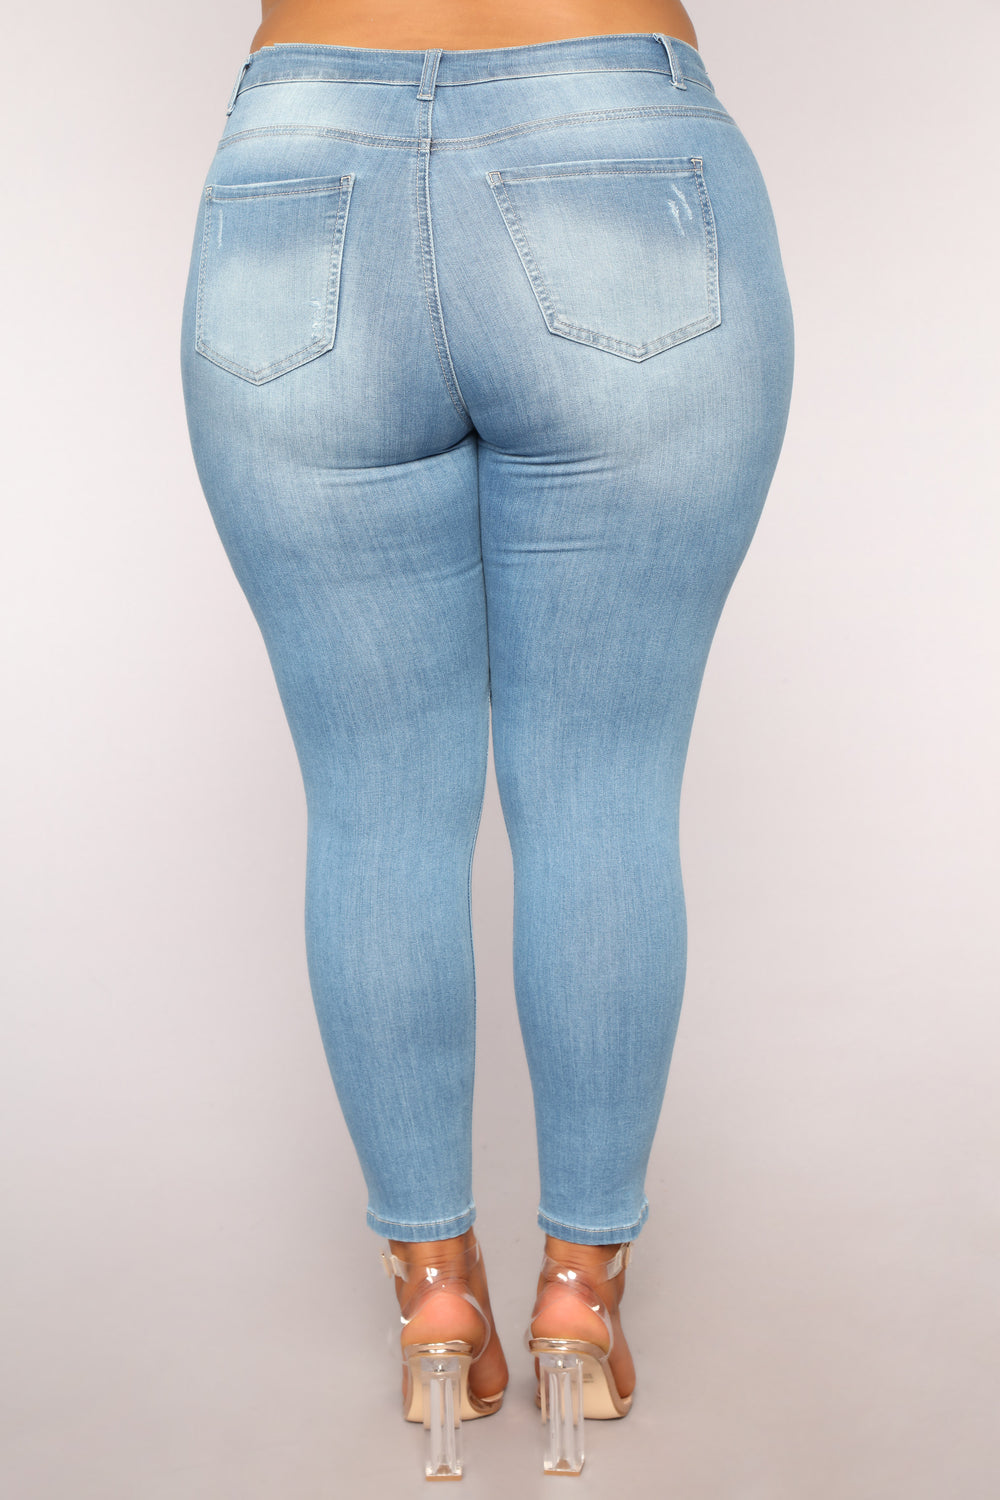 Phoebe II Supersoft Skinny Jeans - Light Blue Wash